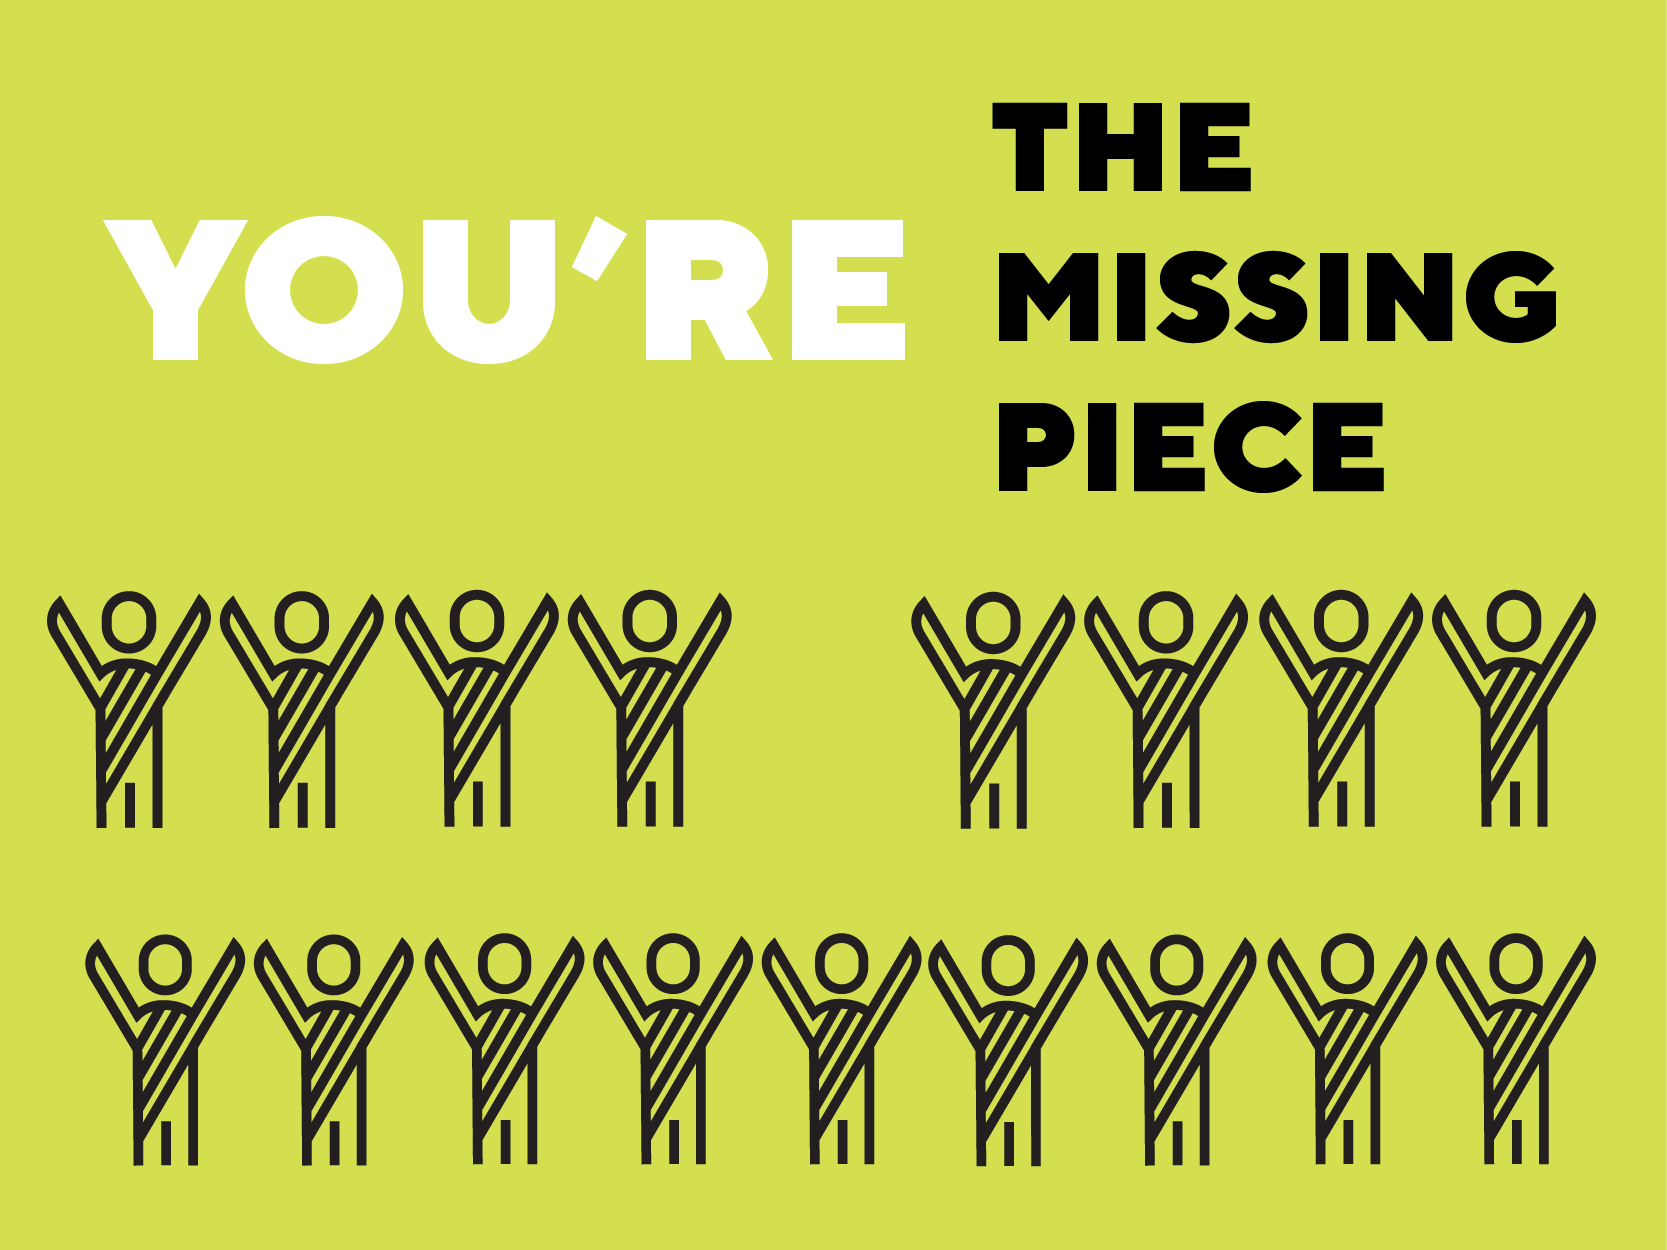 Volunteer - You're the Missing Piece!